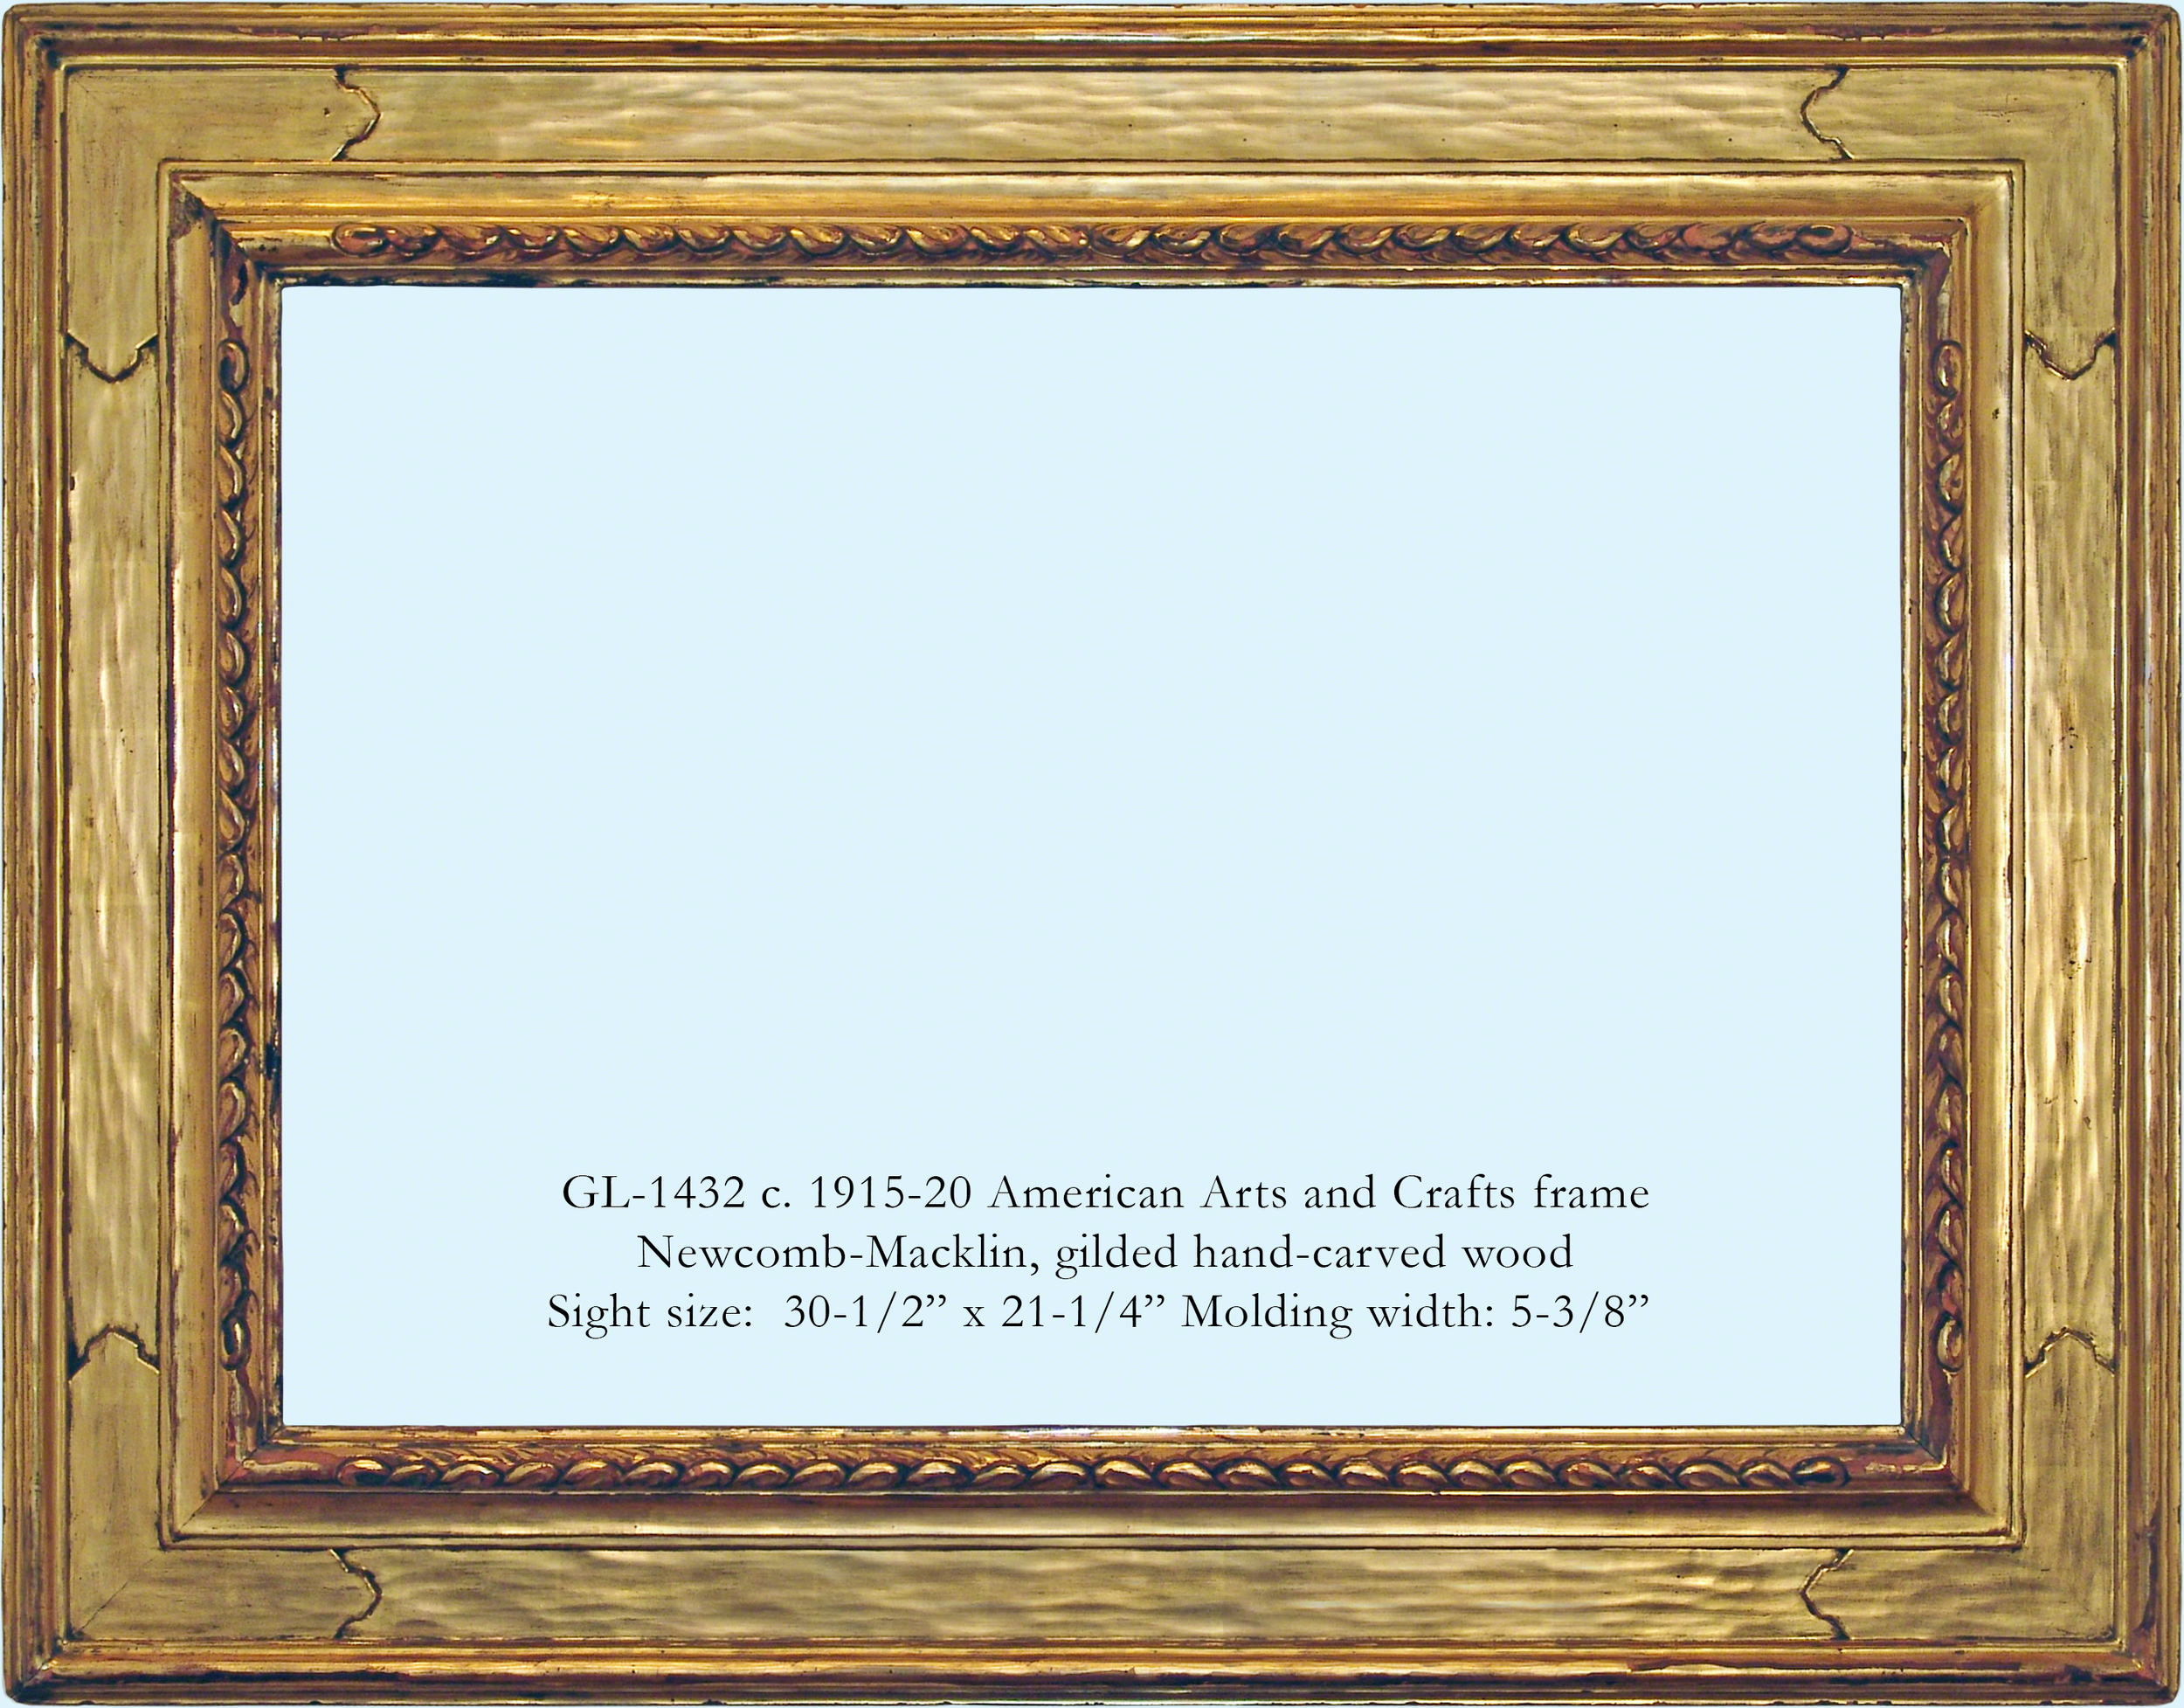 Period american frames gill lagodich gallery gl 1432 american arts and crafts frame wmg jeuxipadfo Choice Image